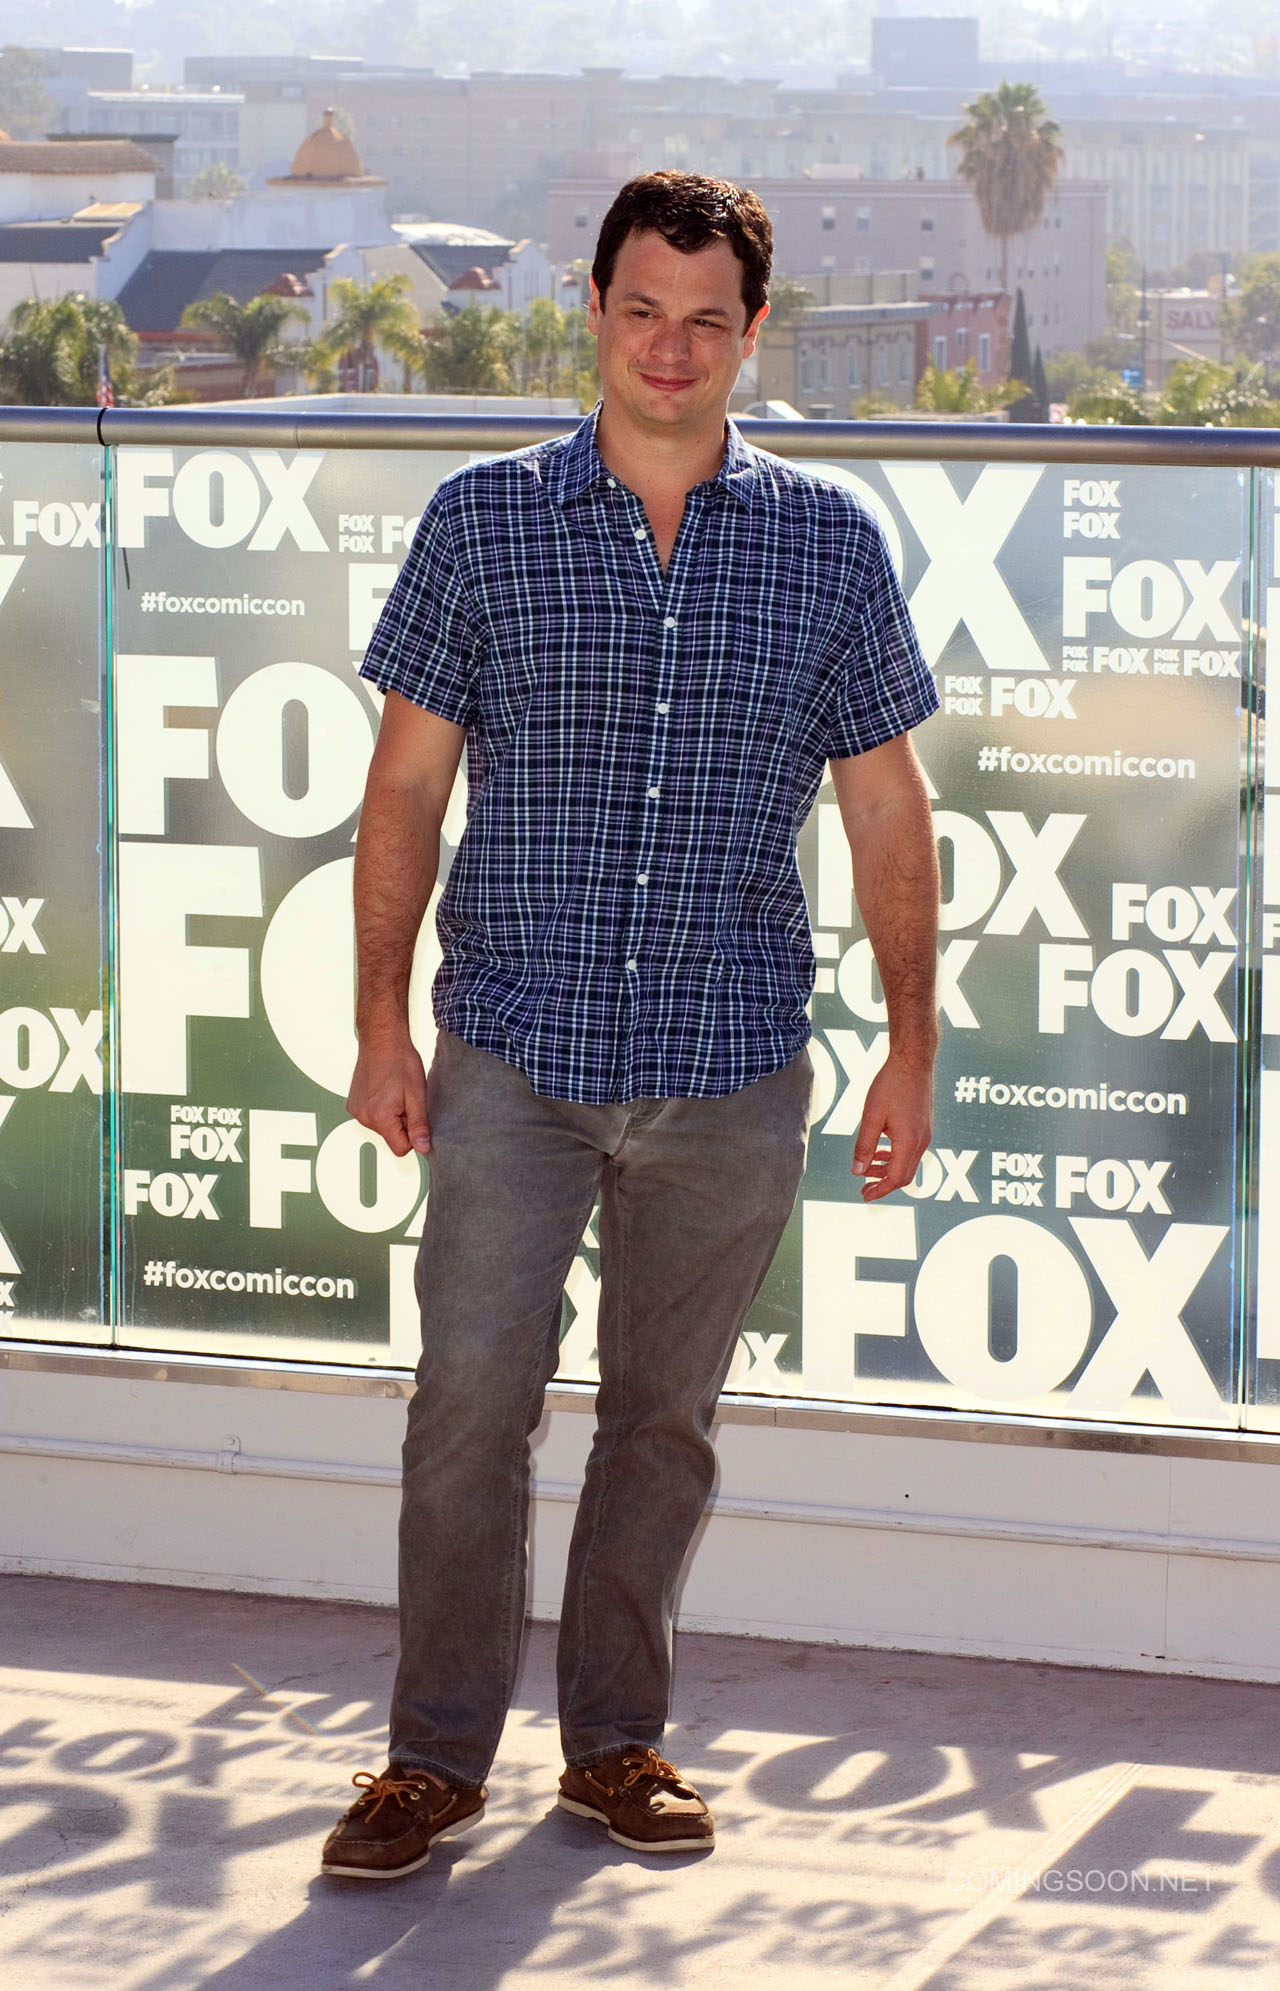 Fox Comic Con breakfast with the cast of Walking Dead and Outcast Featuring: David Alpert Where: San Diego, California, United States When: 22 Jul 2016 Credit: Tony Forte/WENN